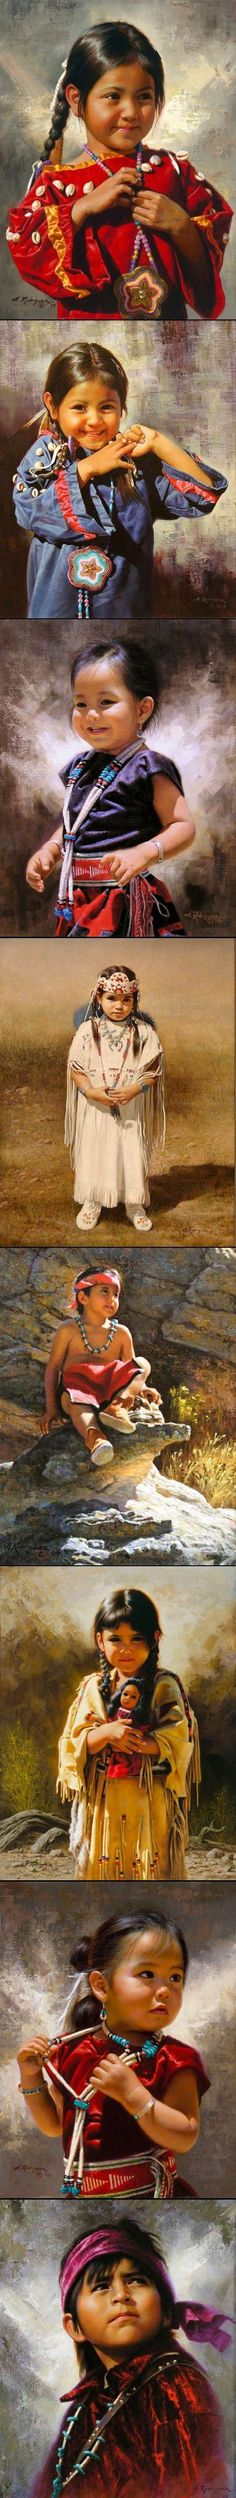 The beautiful eyes of the American Indian children in the oil paintings of Alfredo Rodriguez (1954, American Painter) § $#34;Alfredo Rodriguez (1954, American)$#34; by Marco from I am a Child ~ children in art history (http://iamachild.wordpress.com). Blo